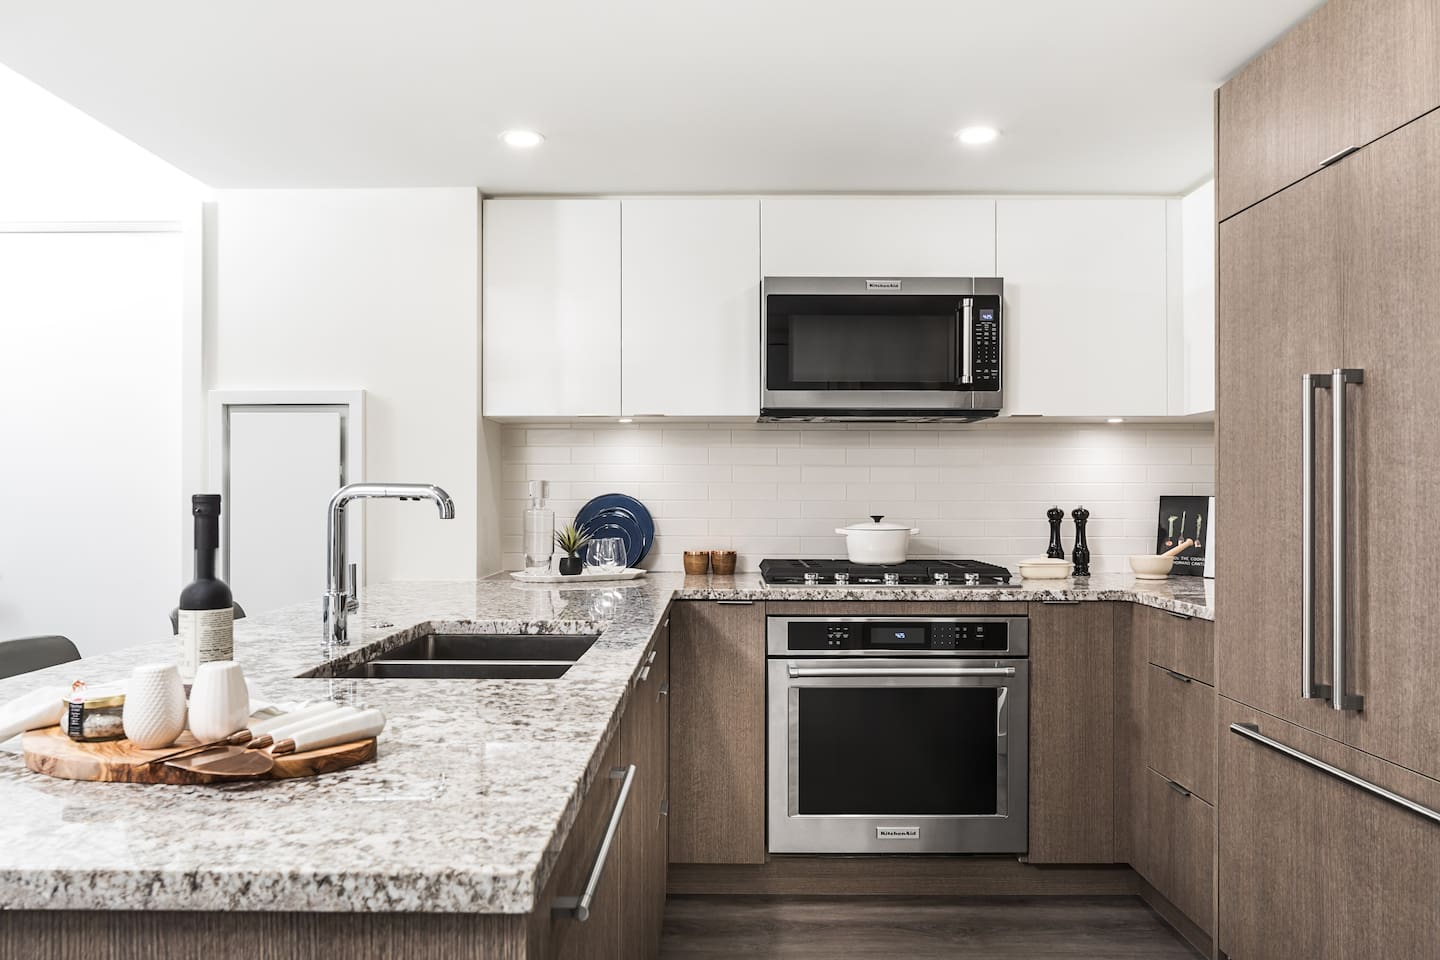 Perfect for a couple, families and friends, business travelers, or those who like to entertain, our luxury furnished two bedrooms in Vancouver have everything you – and up to six friends – could need.